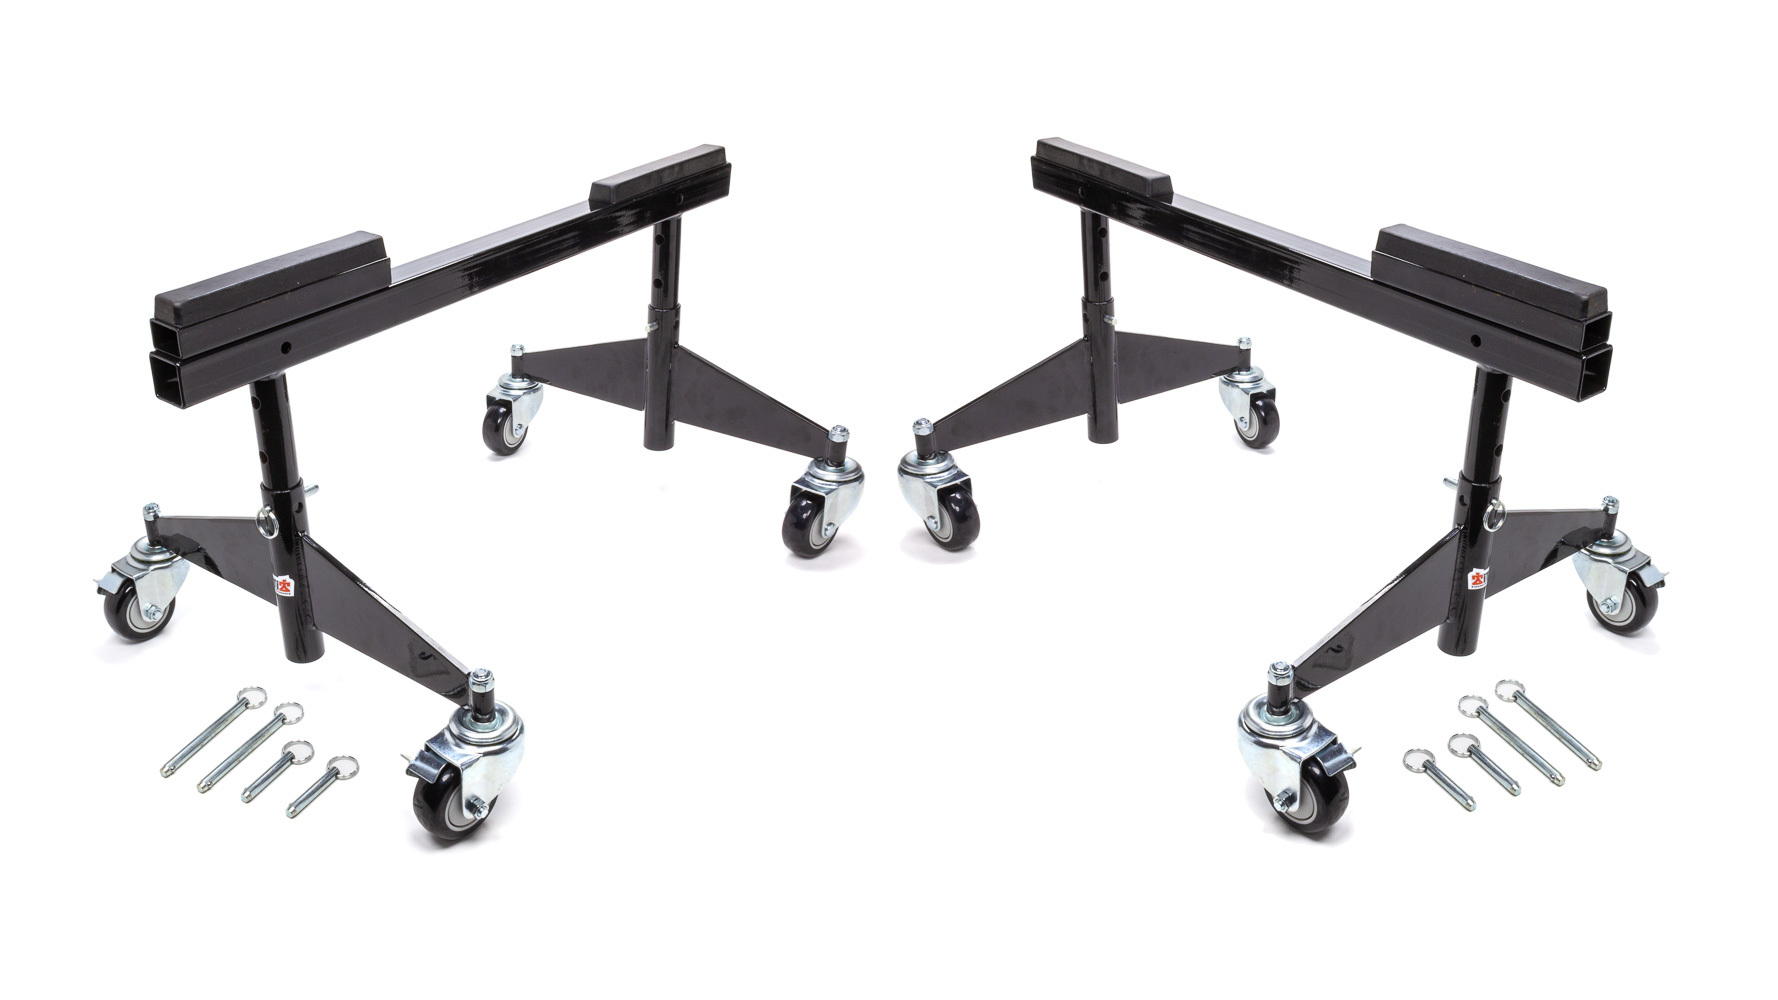 Ti22 Performance Rolling Chassis Stands Black